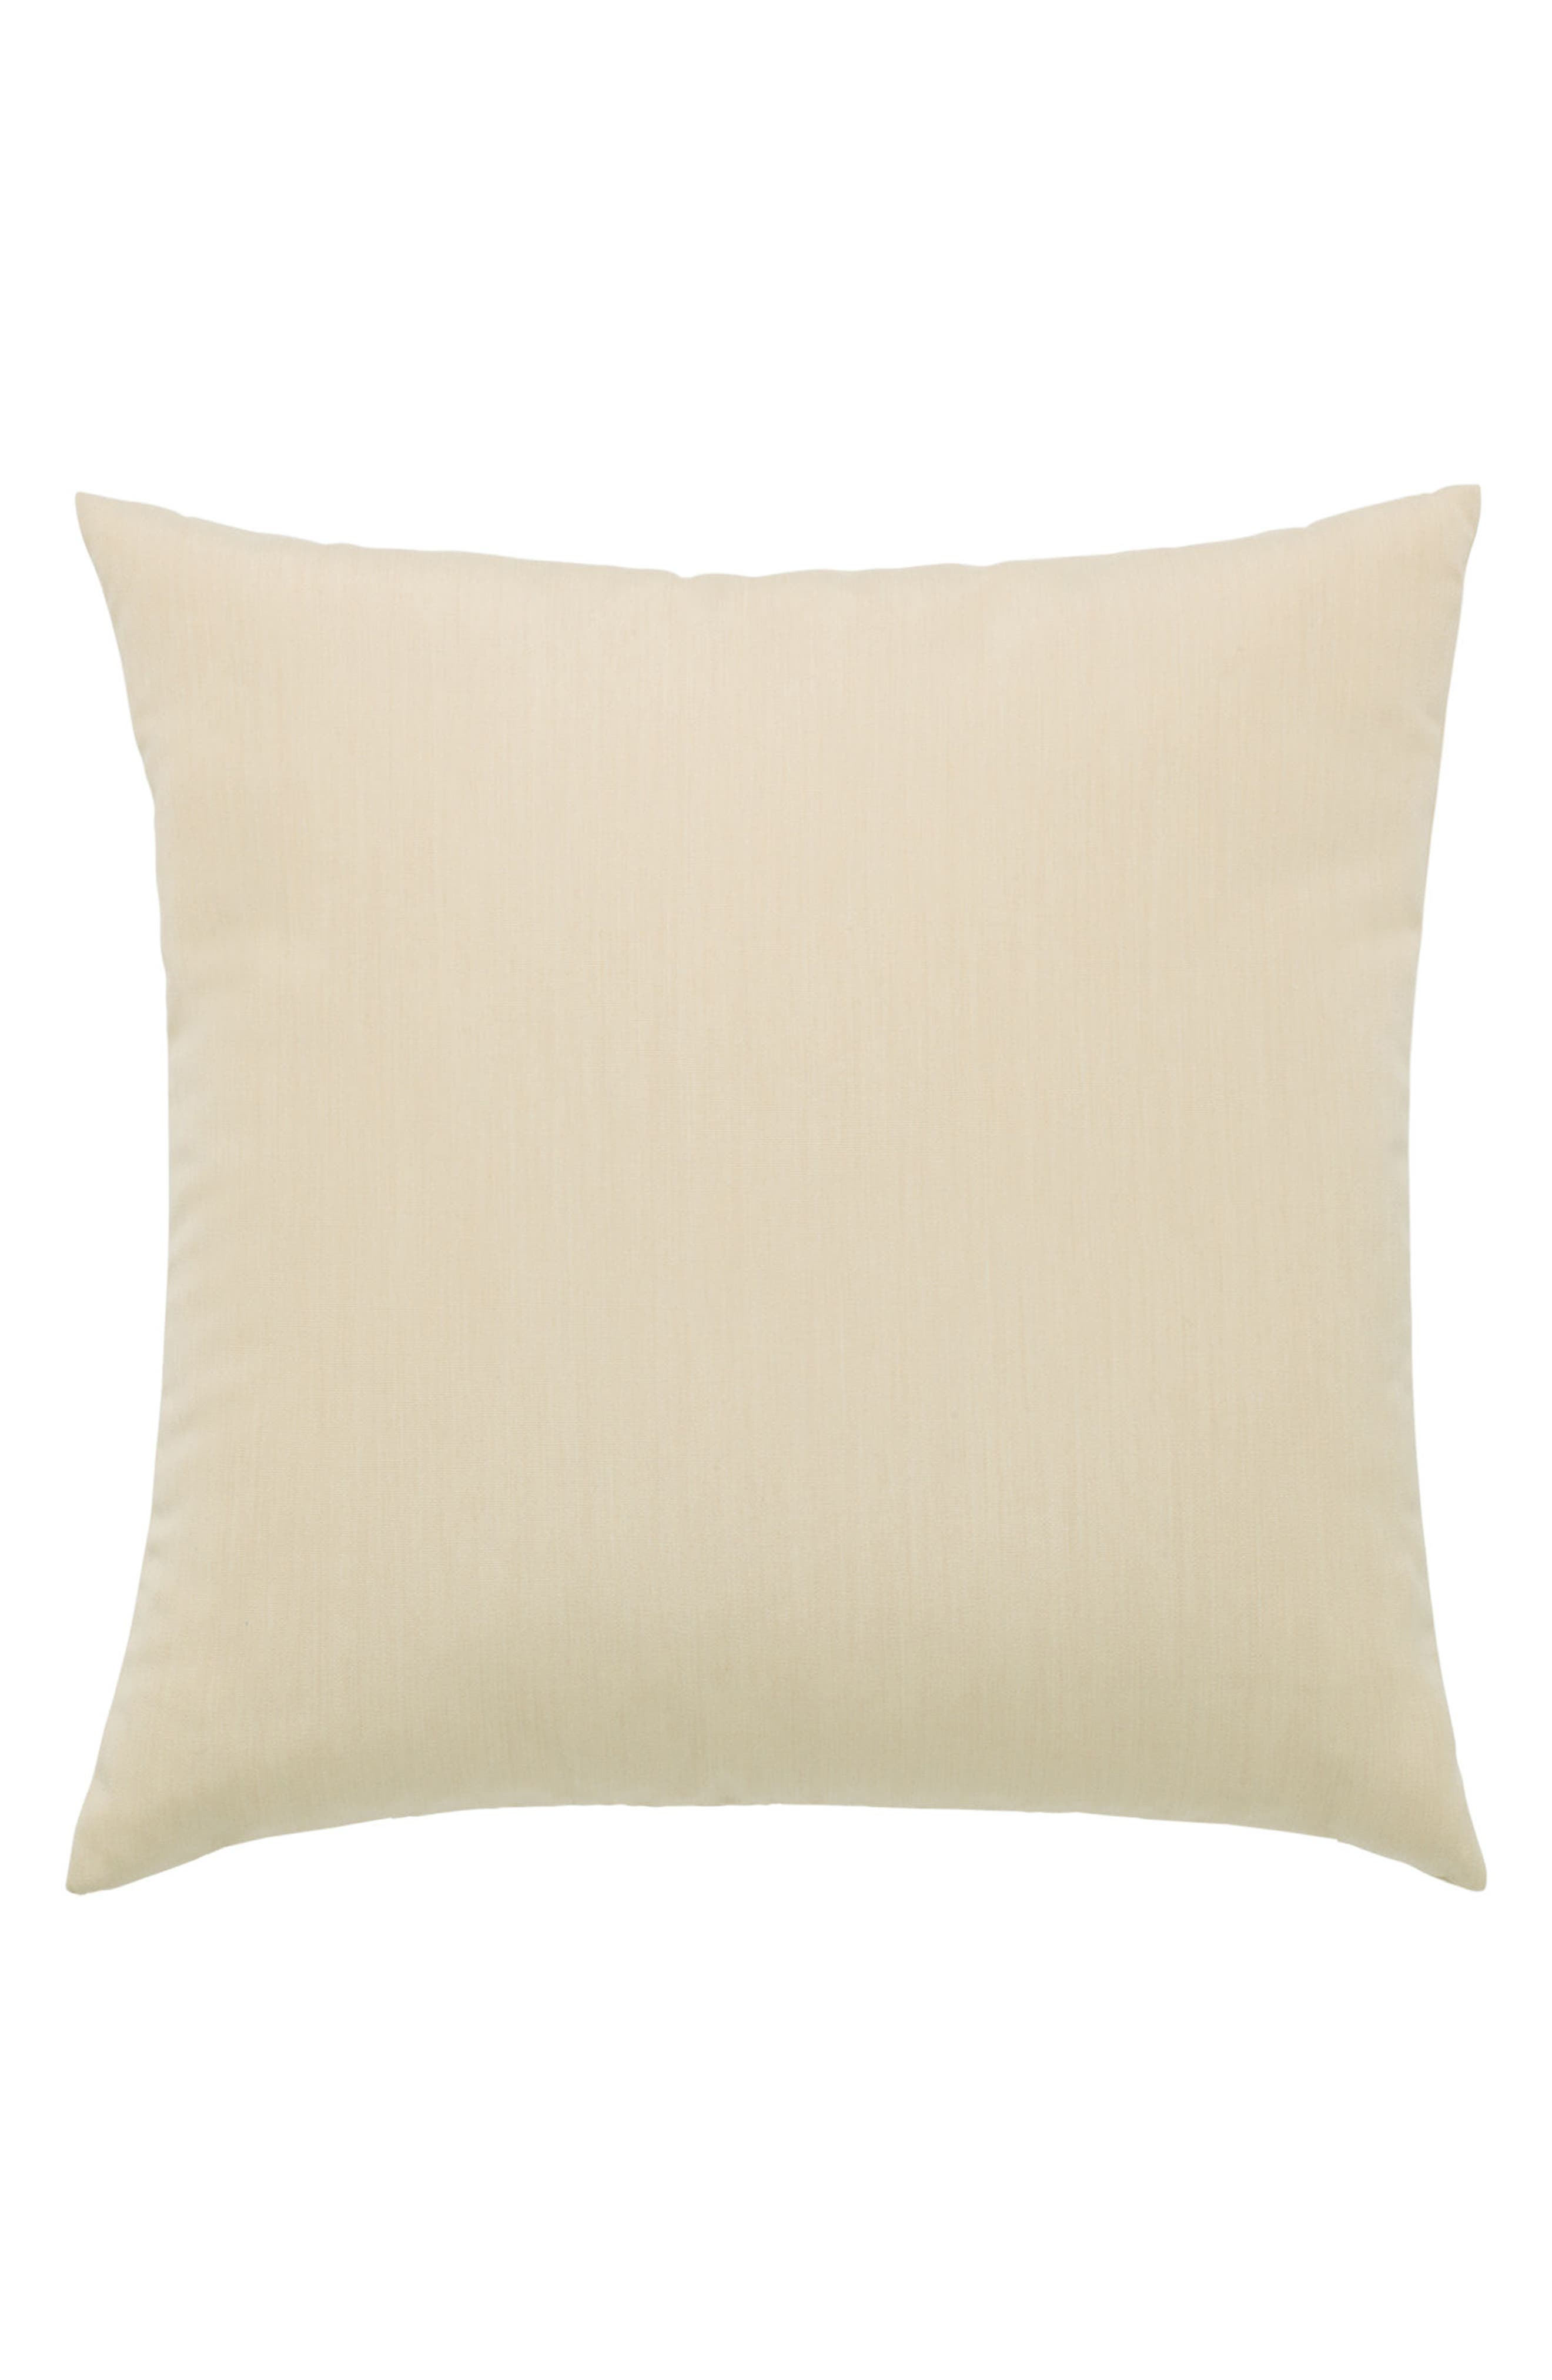 Suzani Candy Indoor/Outdoor Accent Pillow,                             Alternate thumbnail 2, color,                             400